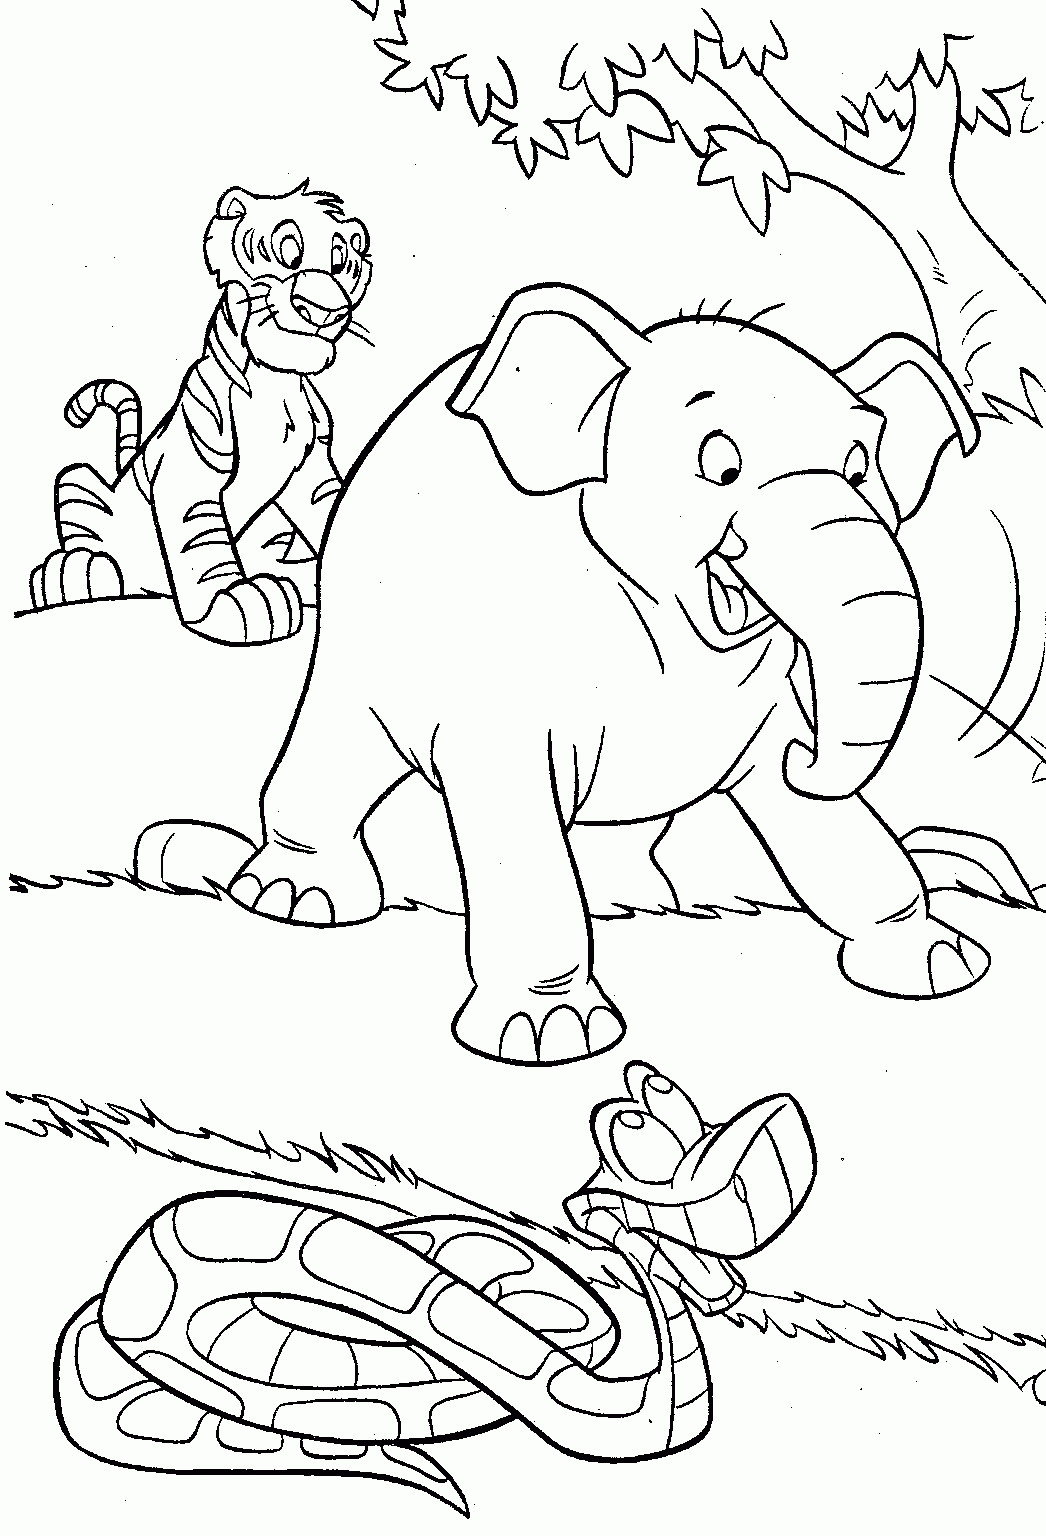 nativity coloring pages - zoo scene coloring pages zoo scene coloring pages printable zoo coloring pages coloring 3